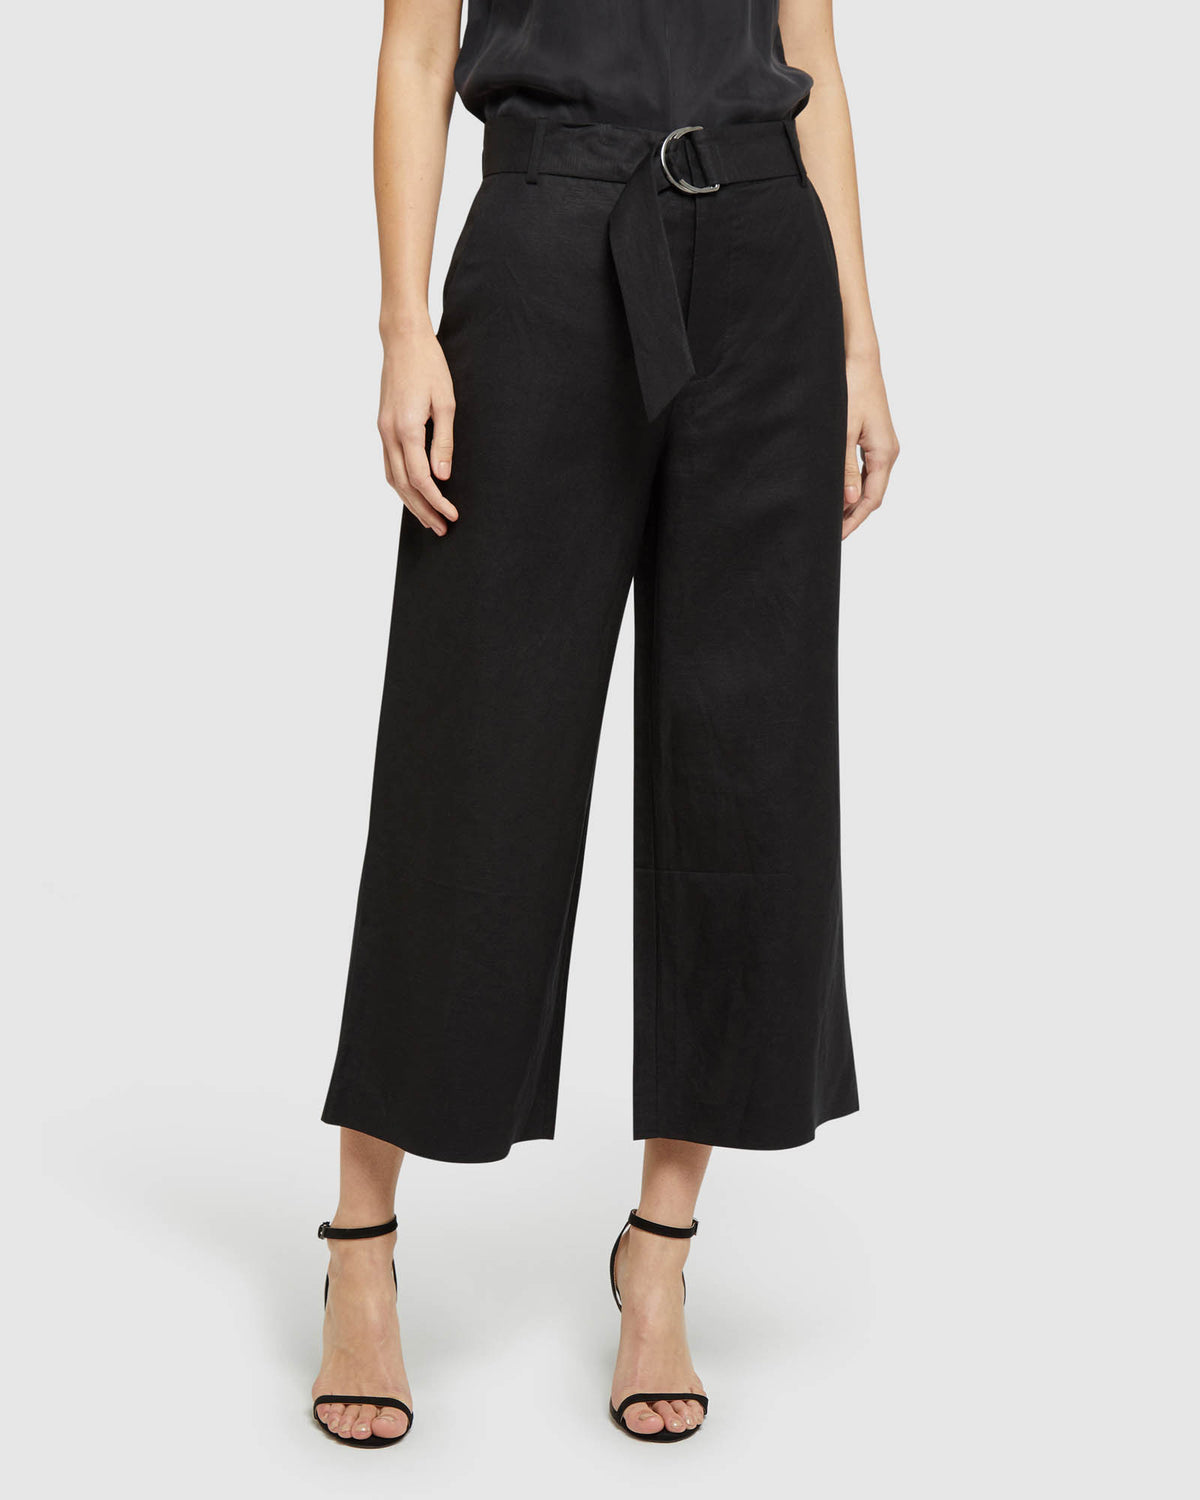 LACIE CULOTTES WITH BELT BLACK